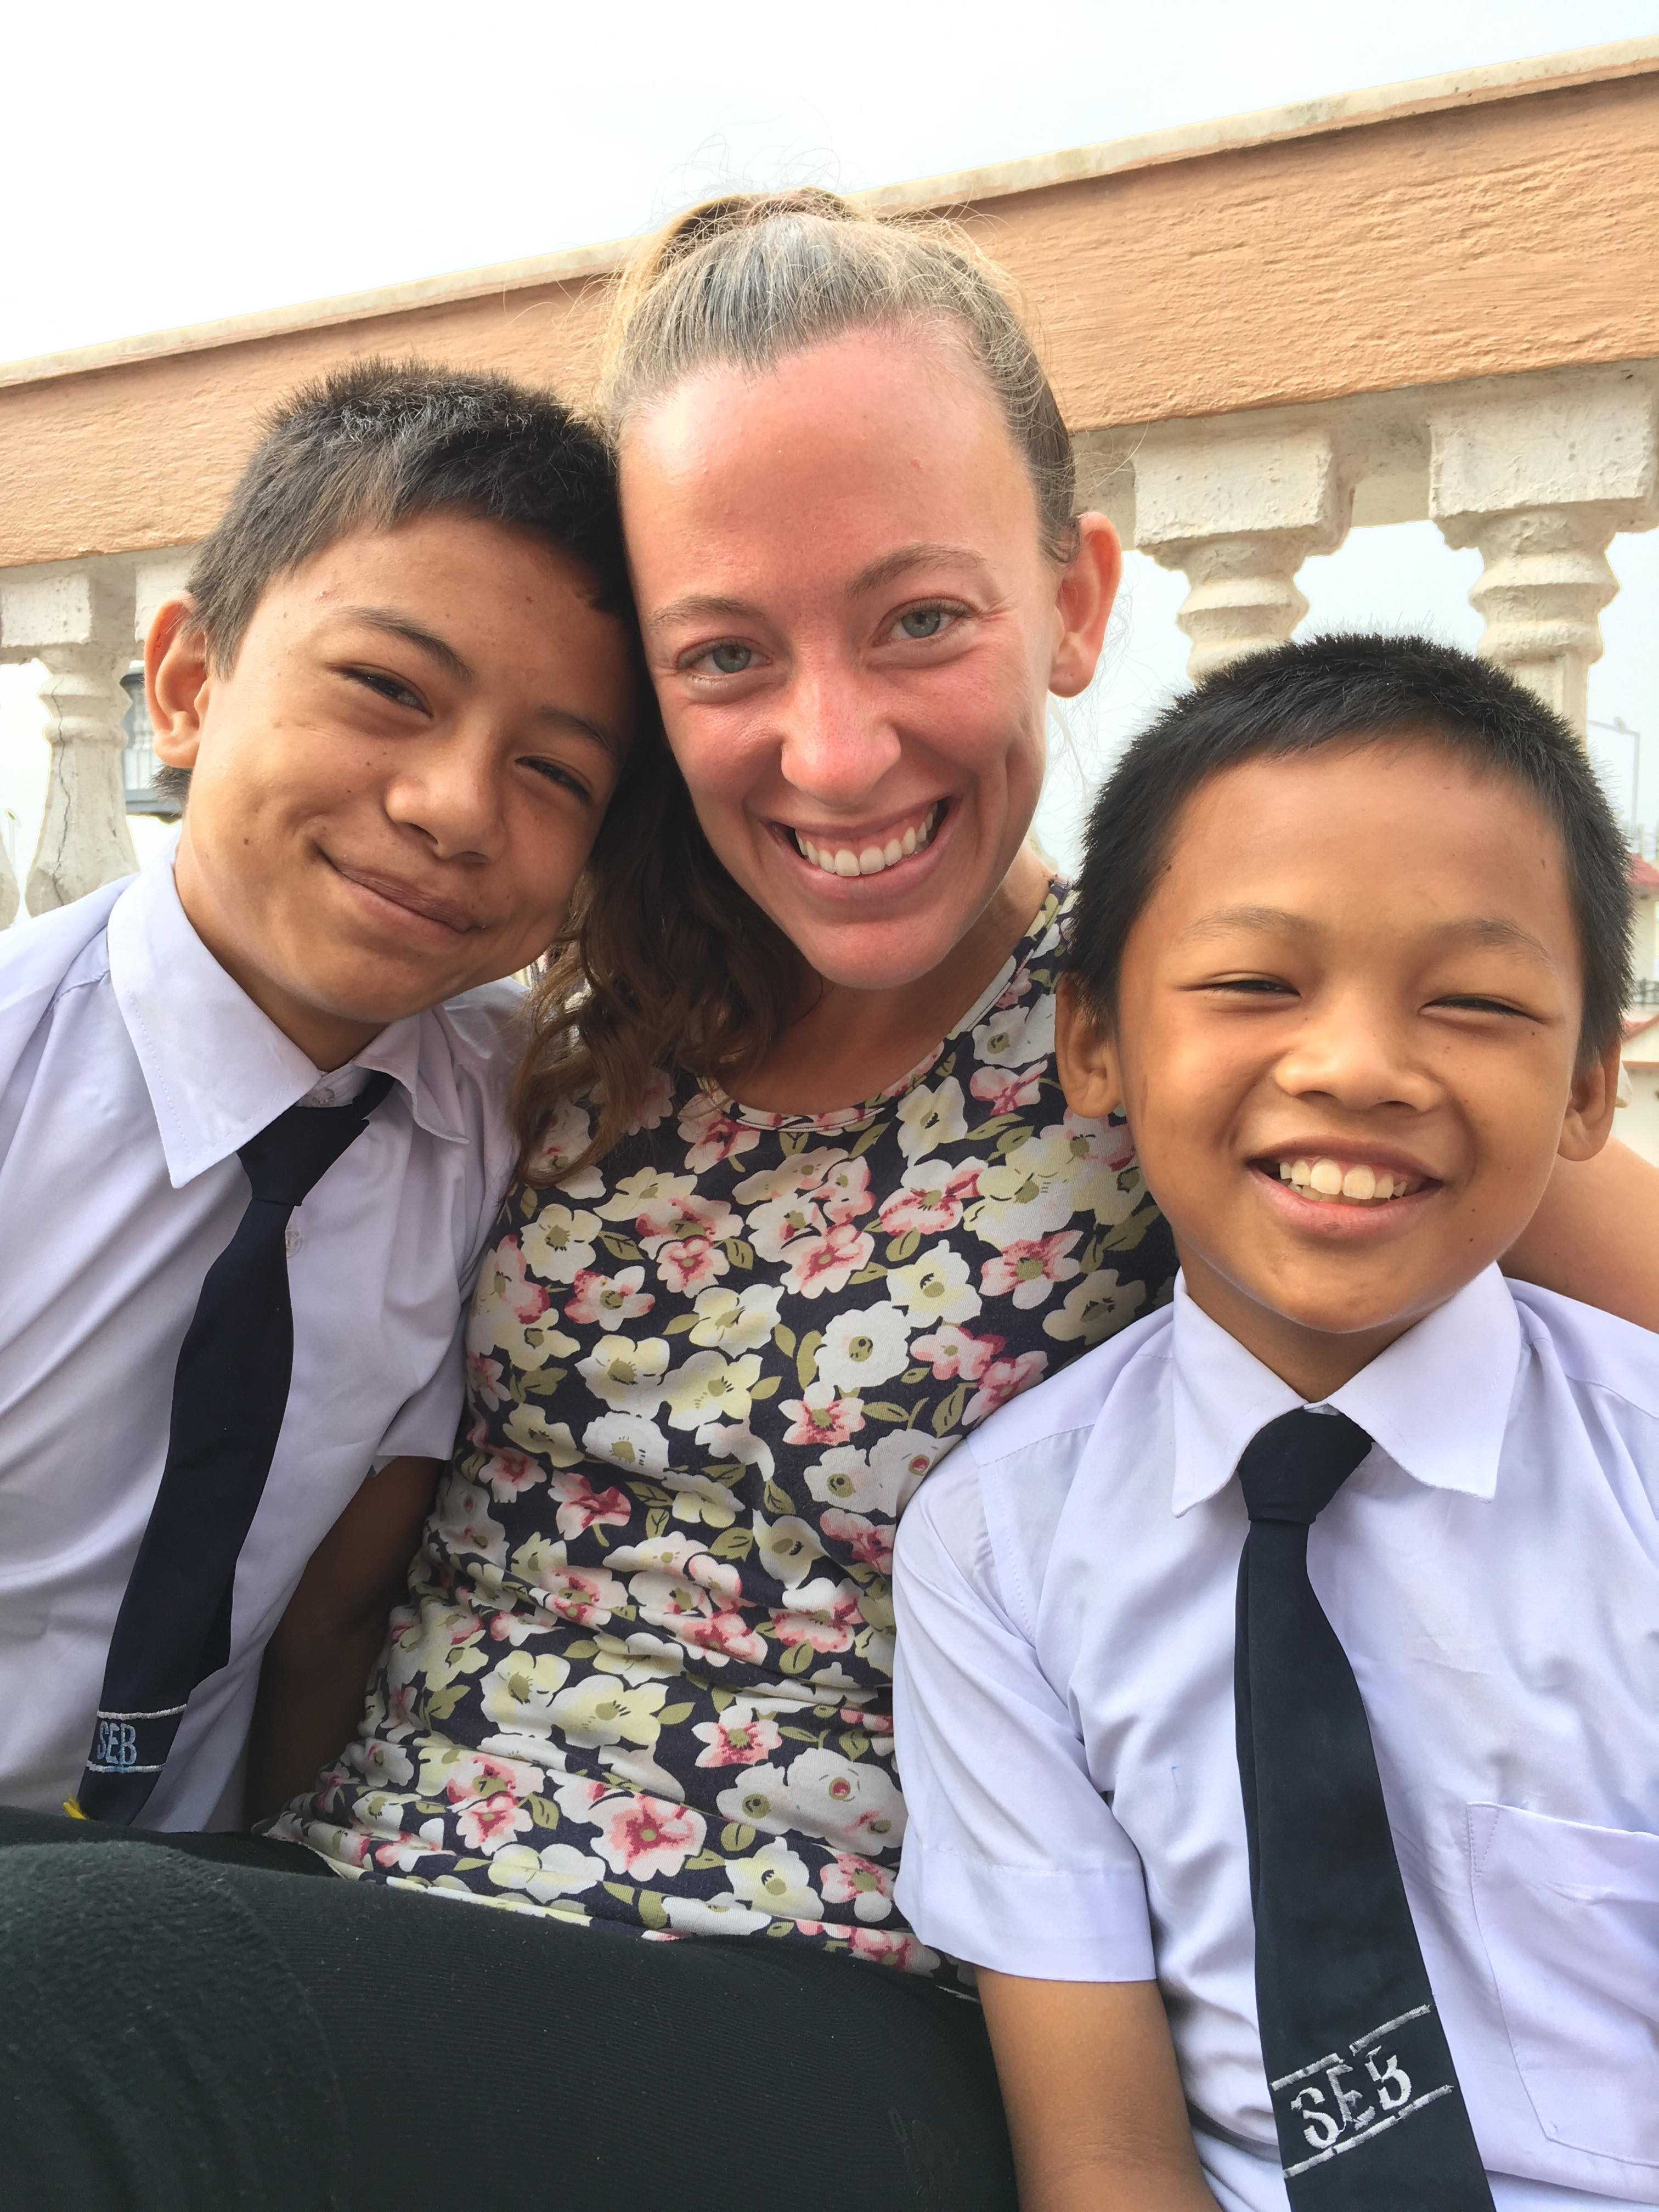 Self Help Nepal volunteer Dani Edgar poses with some of the children from Home of Hope in Kathmandu, Nepal.